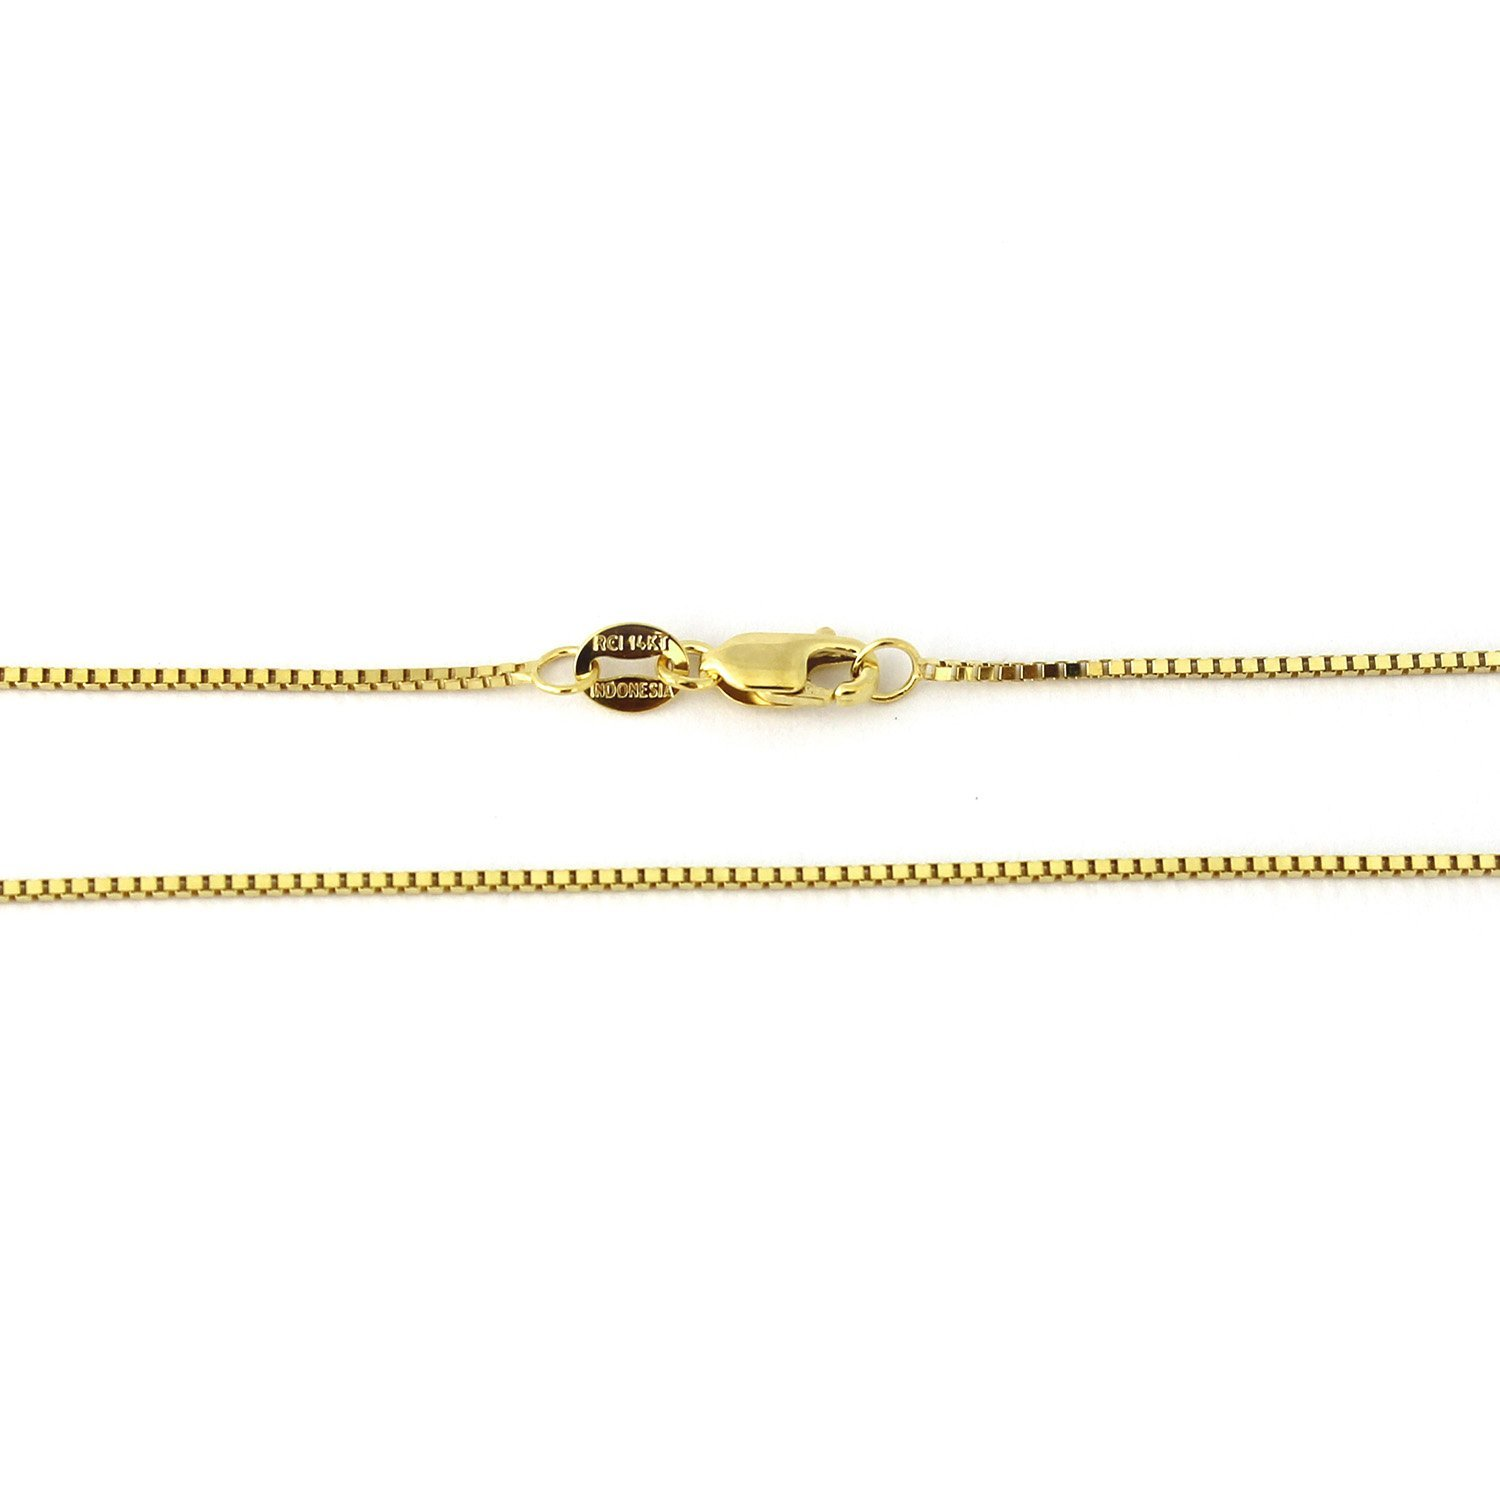 "14k Yellow, White or Rose Gold 0.80mm Box Chain Necklace, 13"" 16"" 18"" 20"" 22"" 24"" 30"""